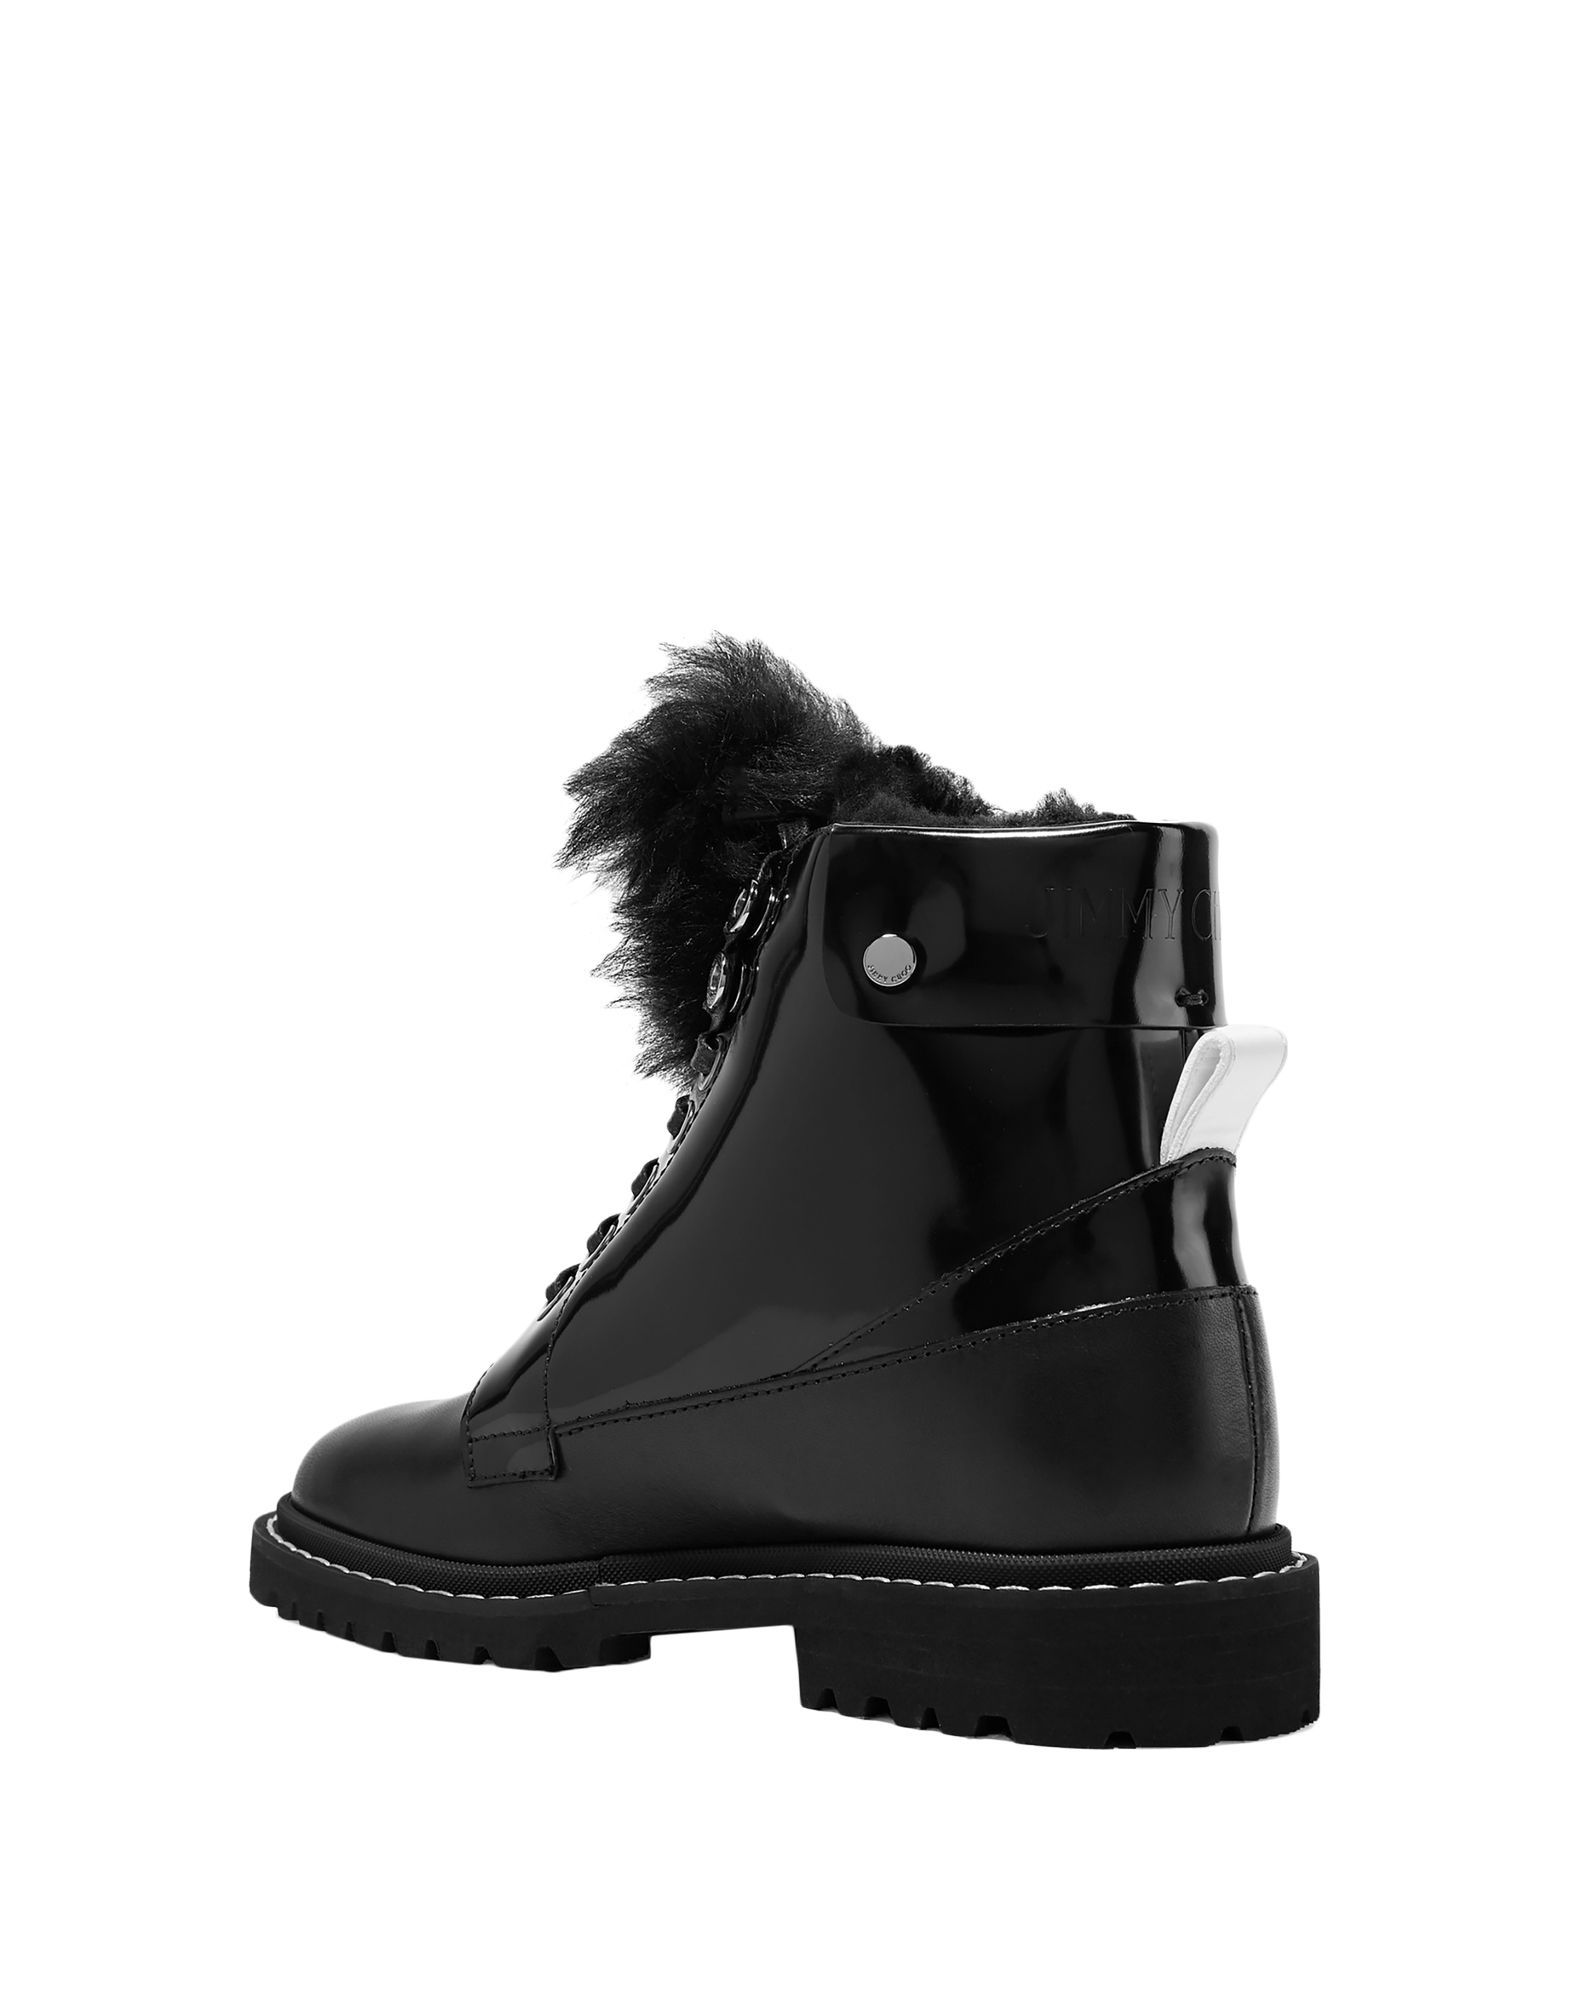 Jimmy Choo Black Lace Up Boots